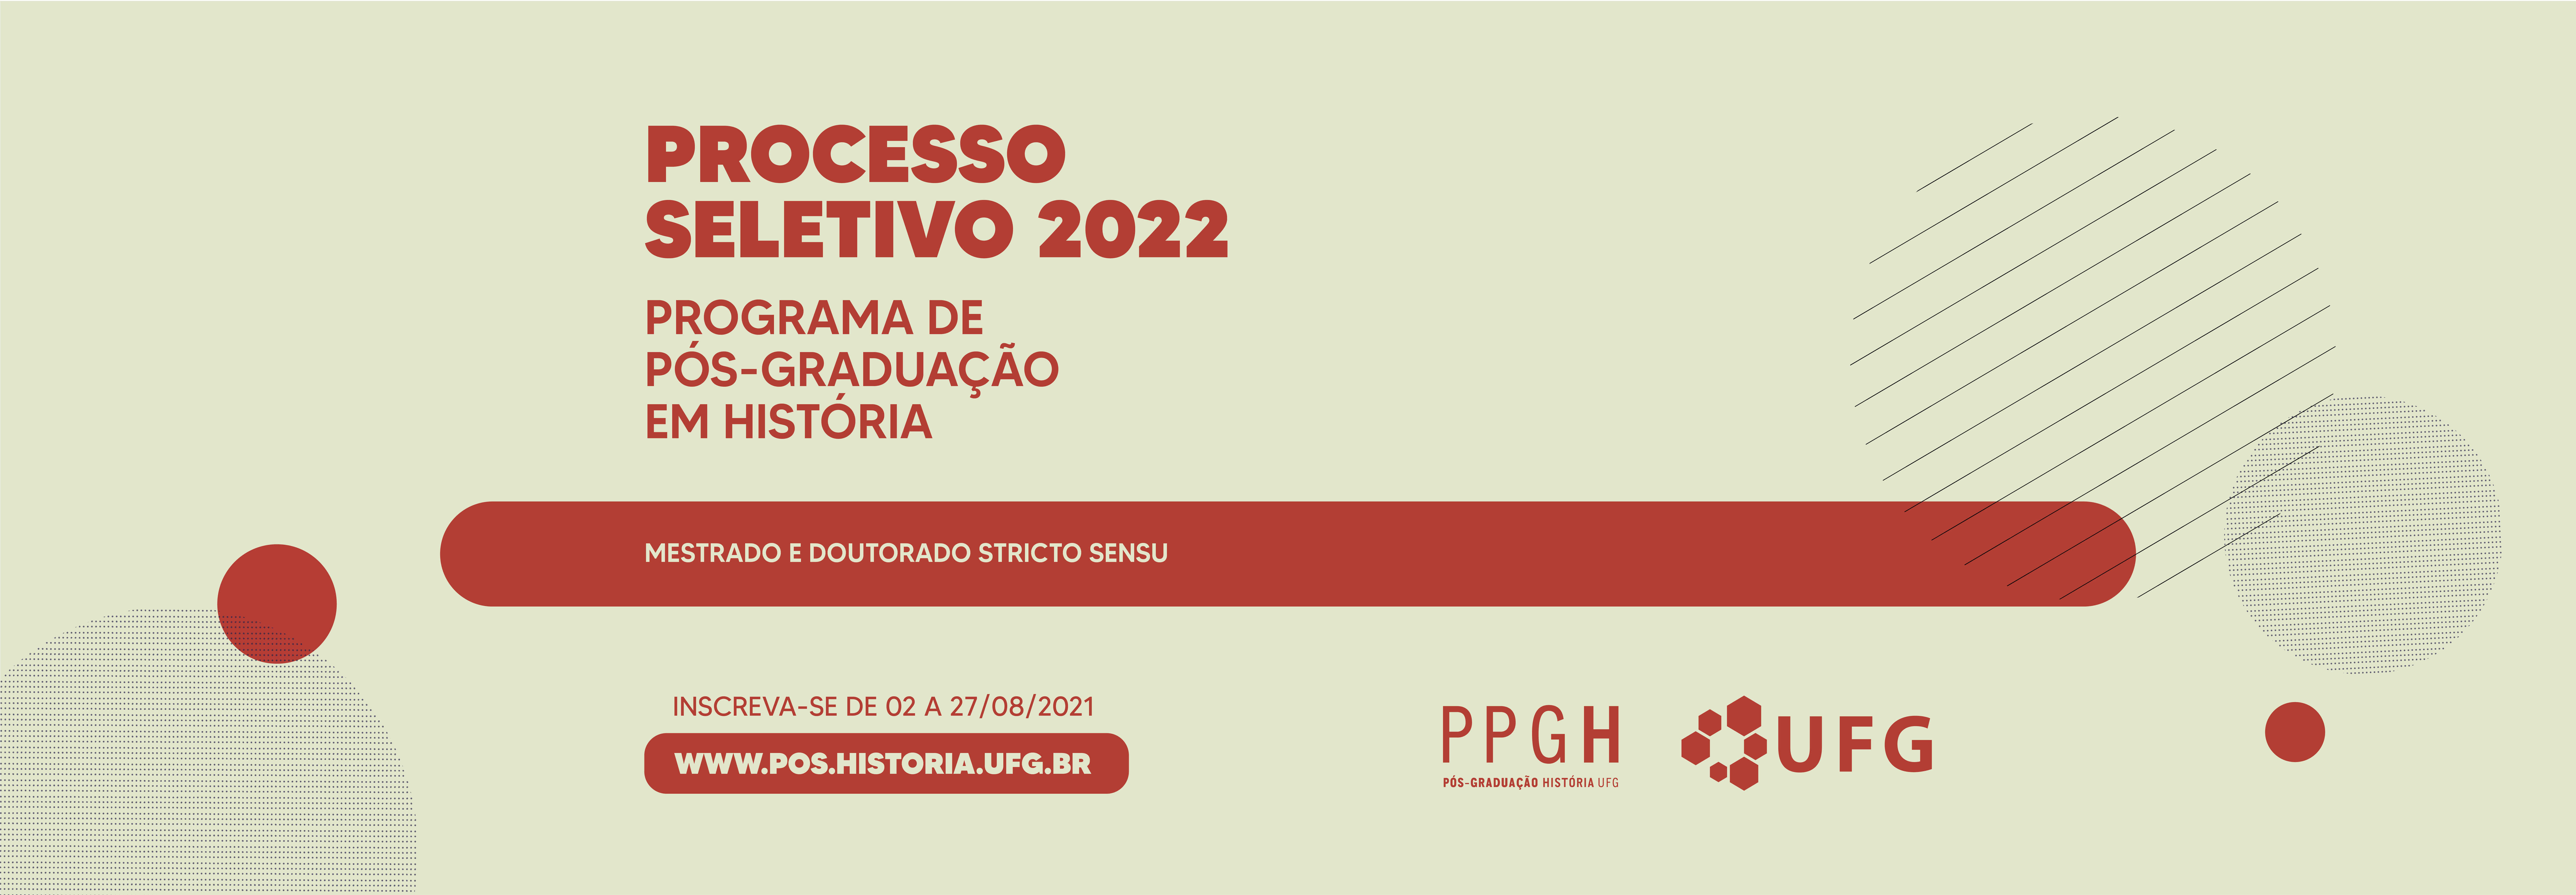 Banner PS 2022